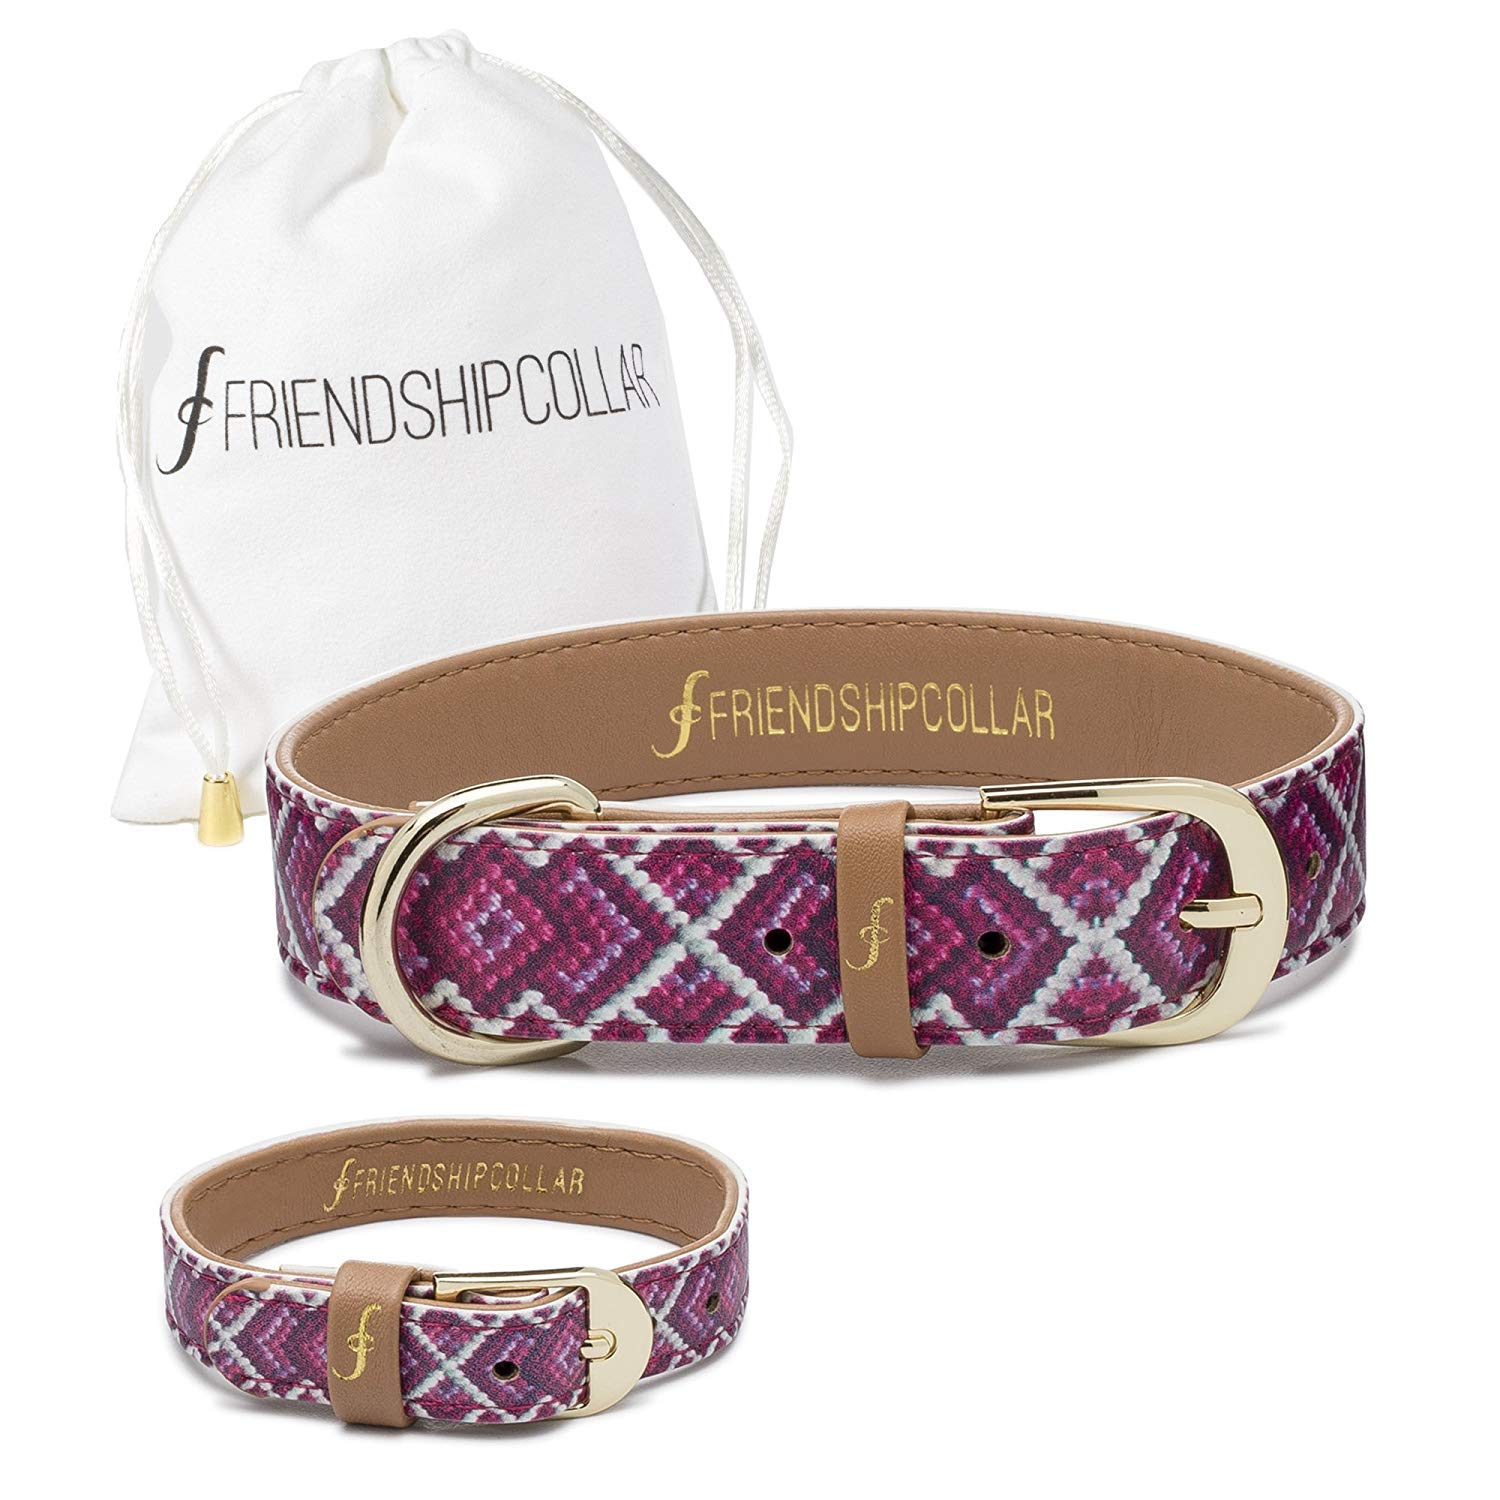 FriendshipCollar Dog or Cat Collar and Matching Bracelet Set - The Pink Princess - Water & Scratch Resistant!